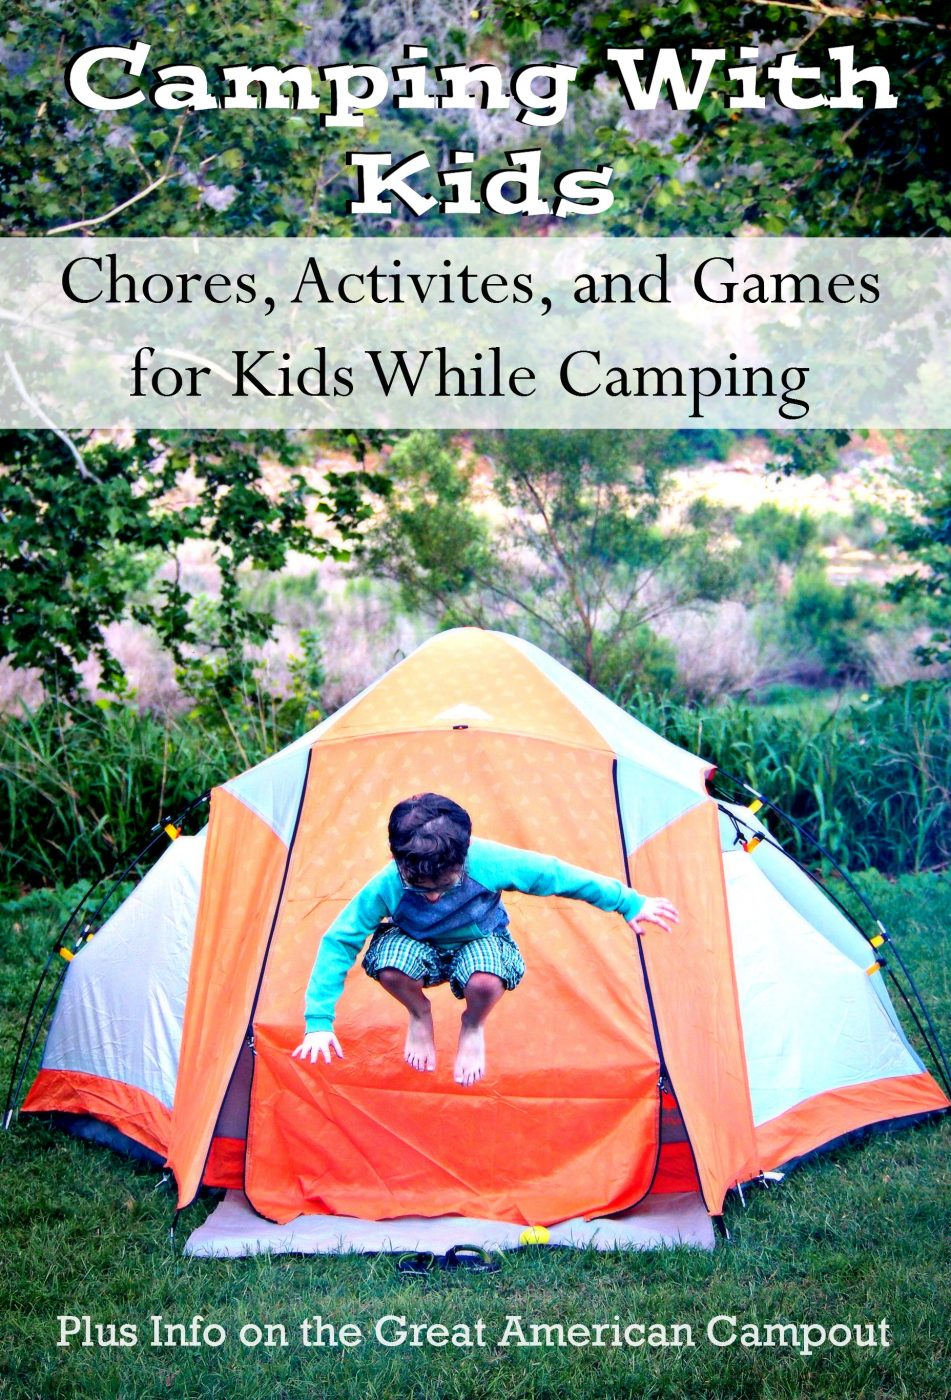 Camping with kids can be a lot of fun, but can also be a bit overwhelming. Check out these tips for camping with children. Great ideas for games, activities and even camp chores for littles.